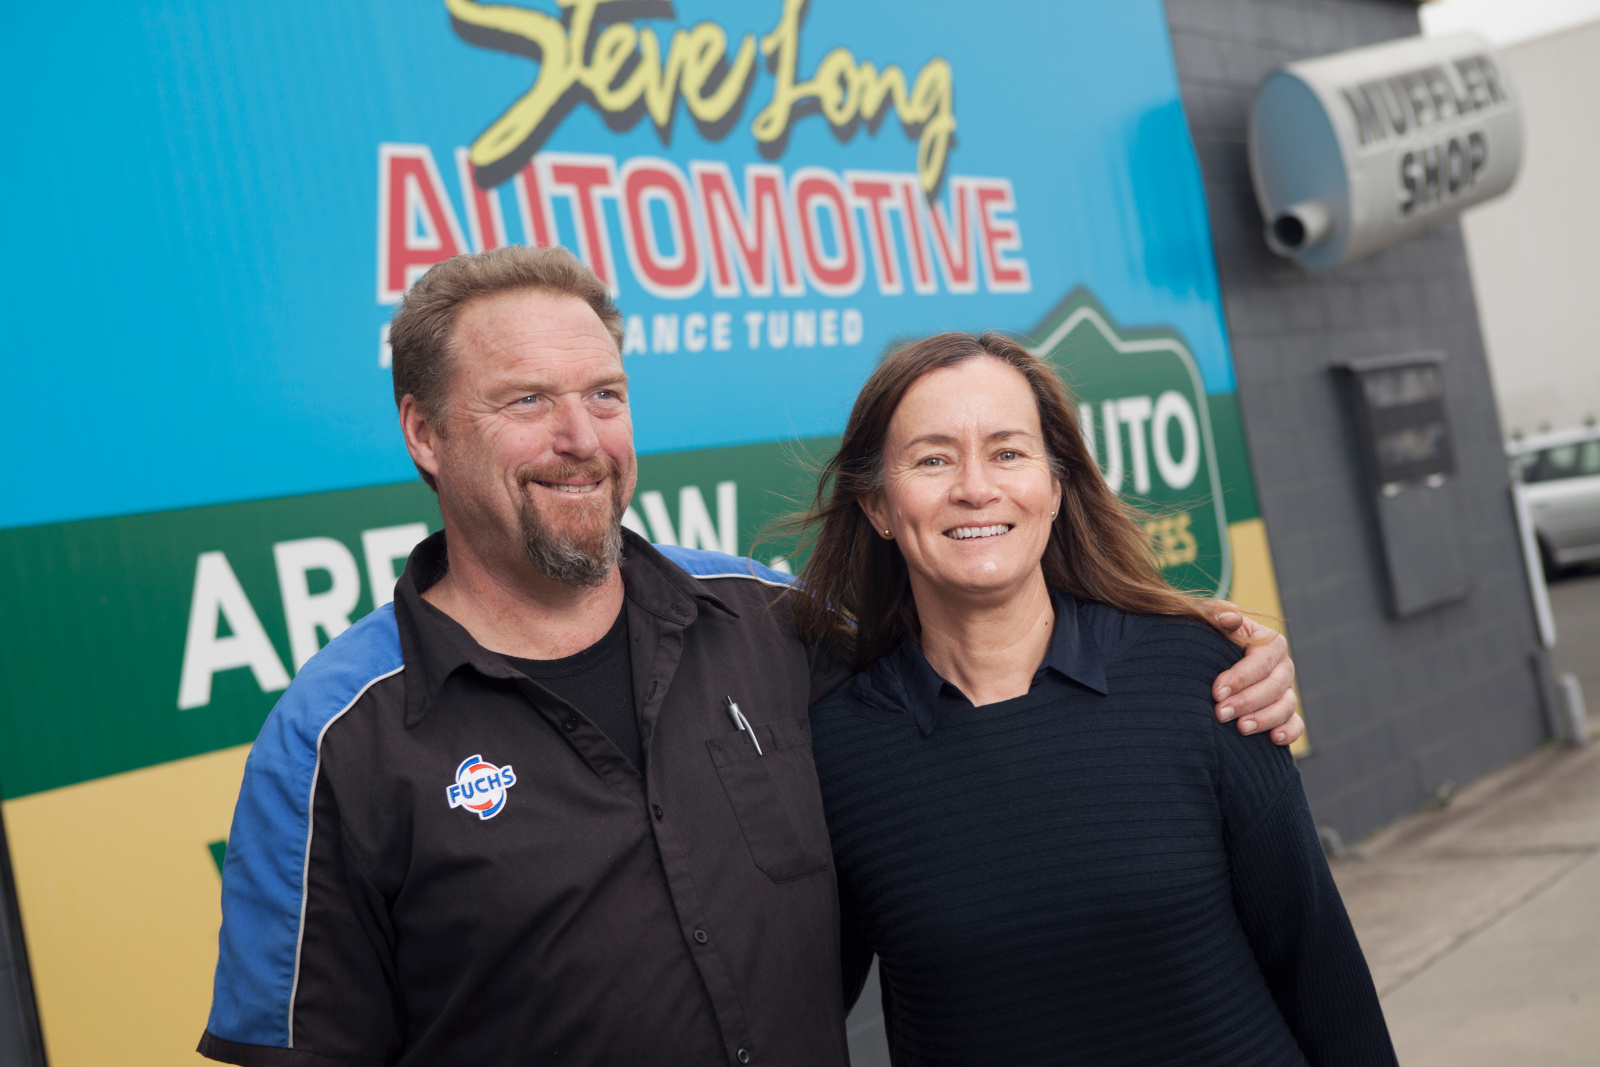 Steve and Sandy from Mount Maunganui Automotive